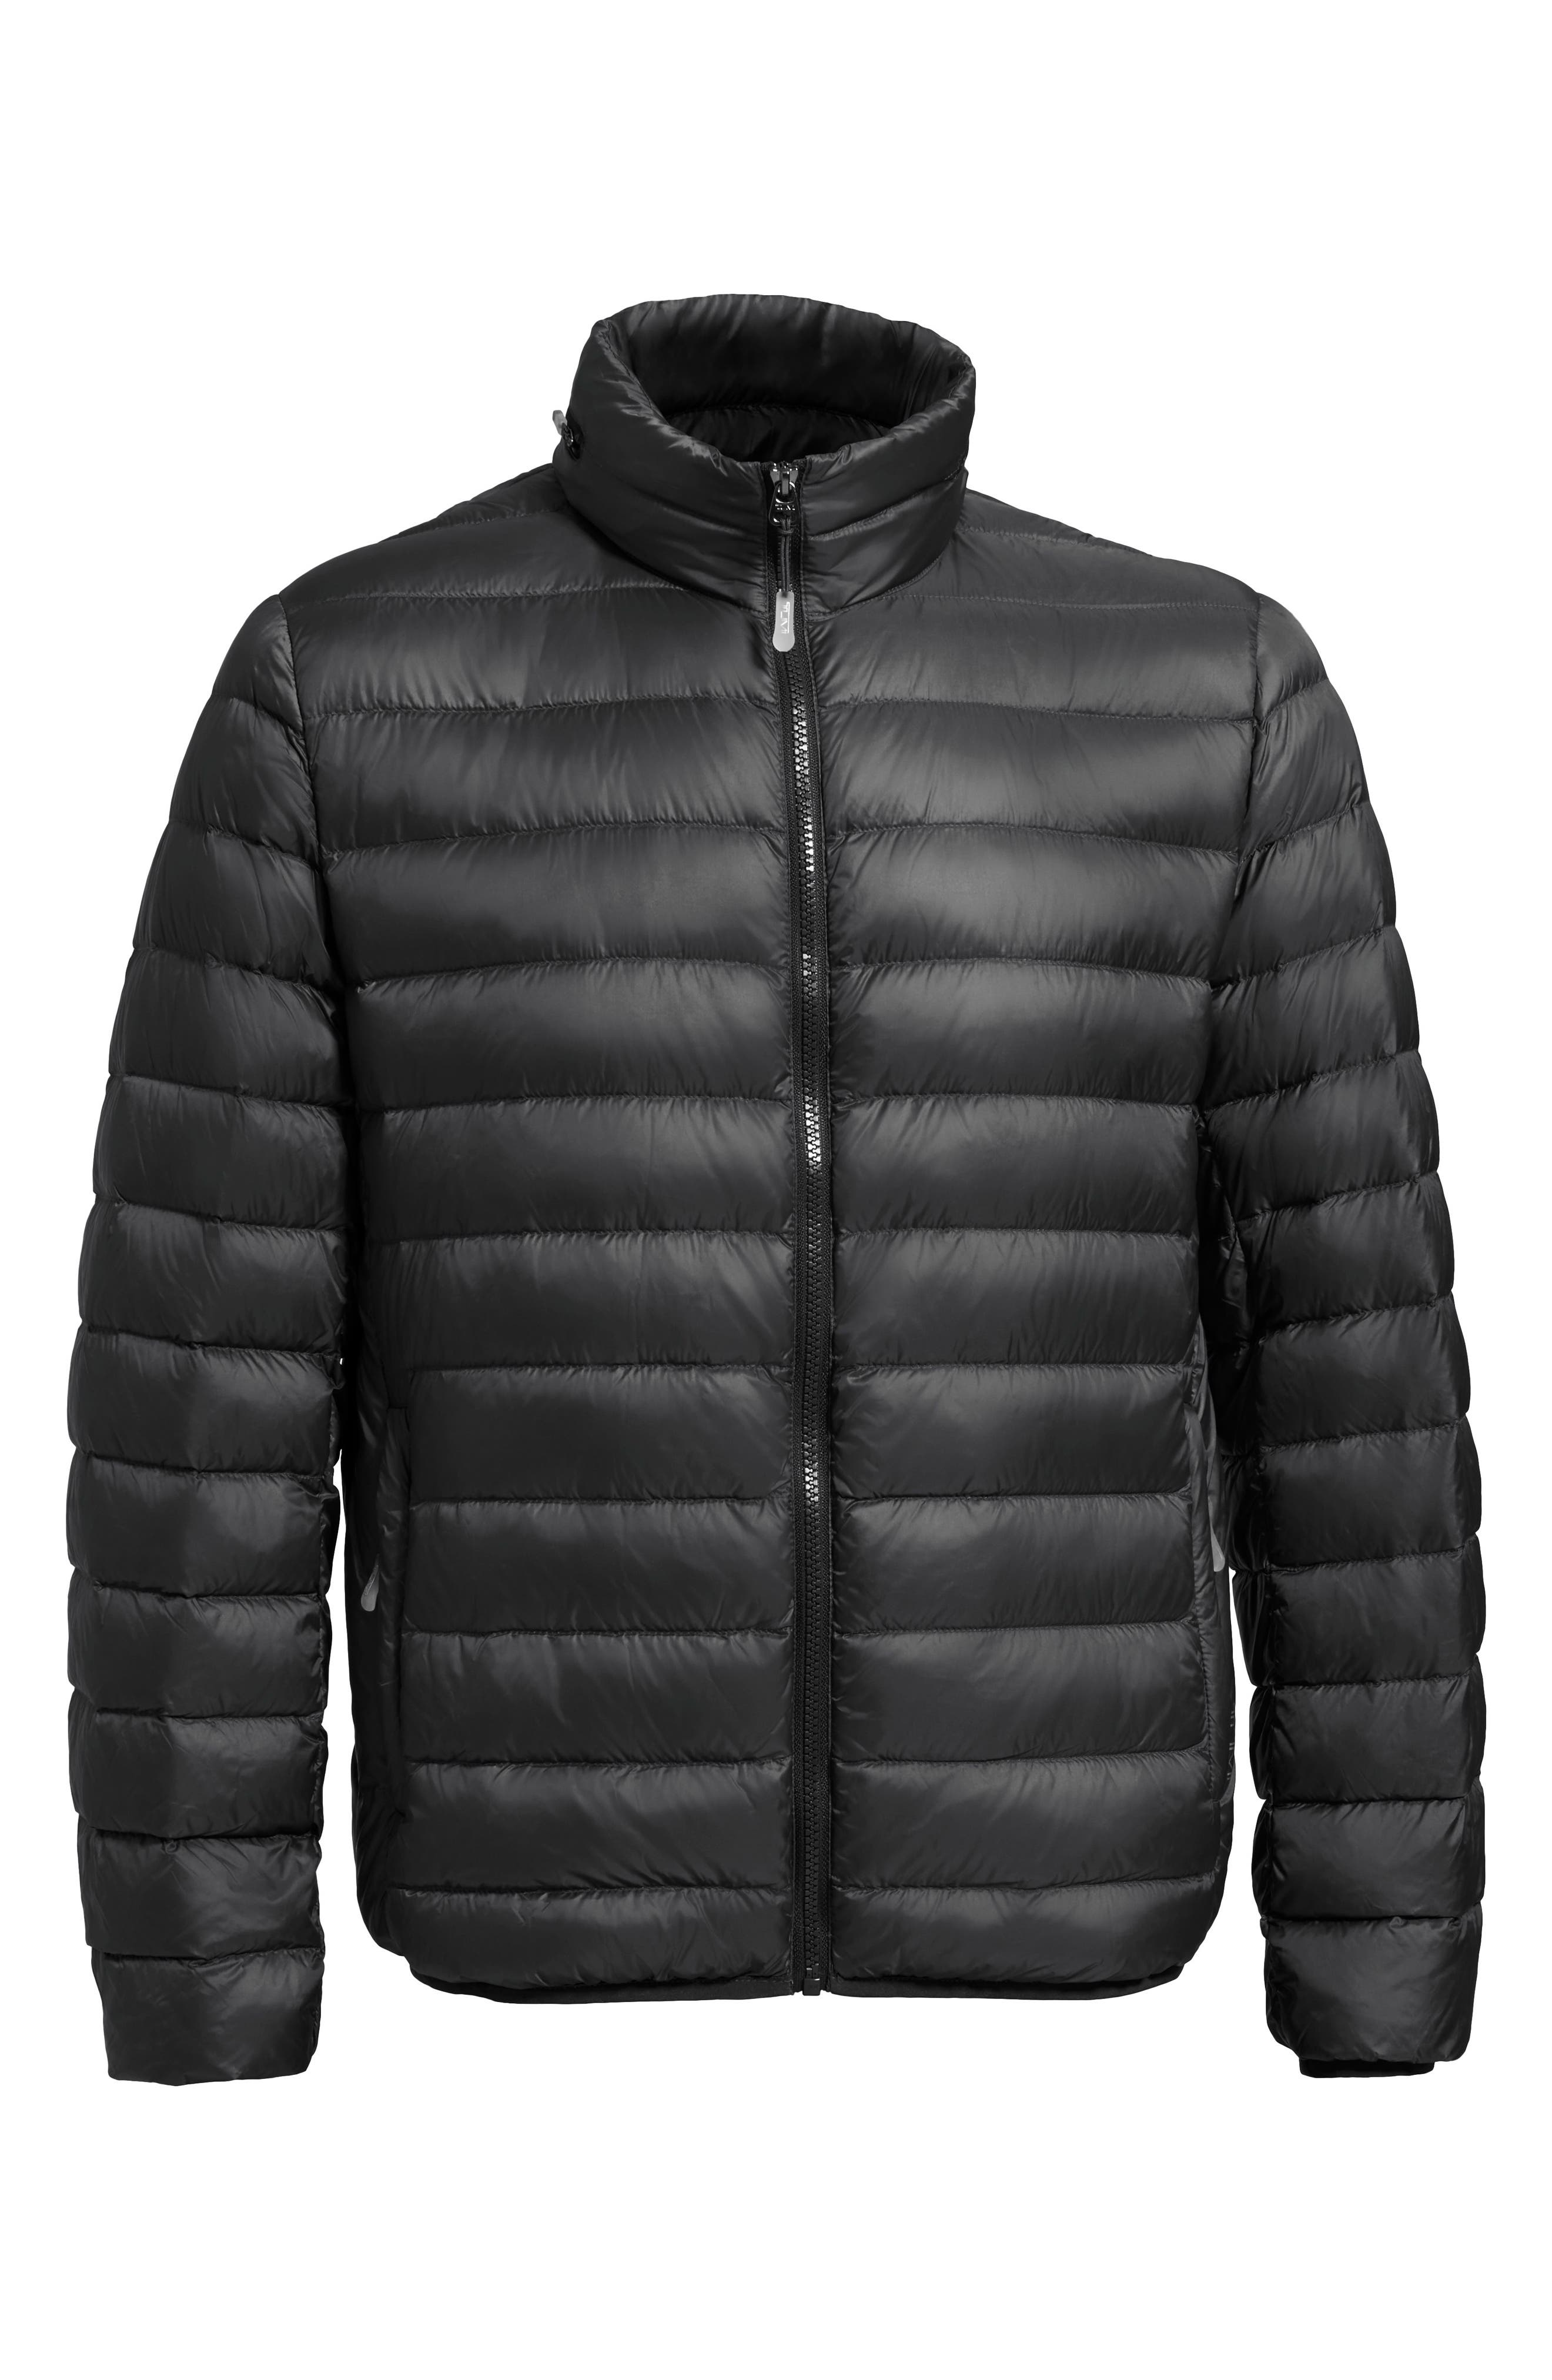 Pax Packable Quilted Jacket,                             Alternate thumbnail 2, color,                             001